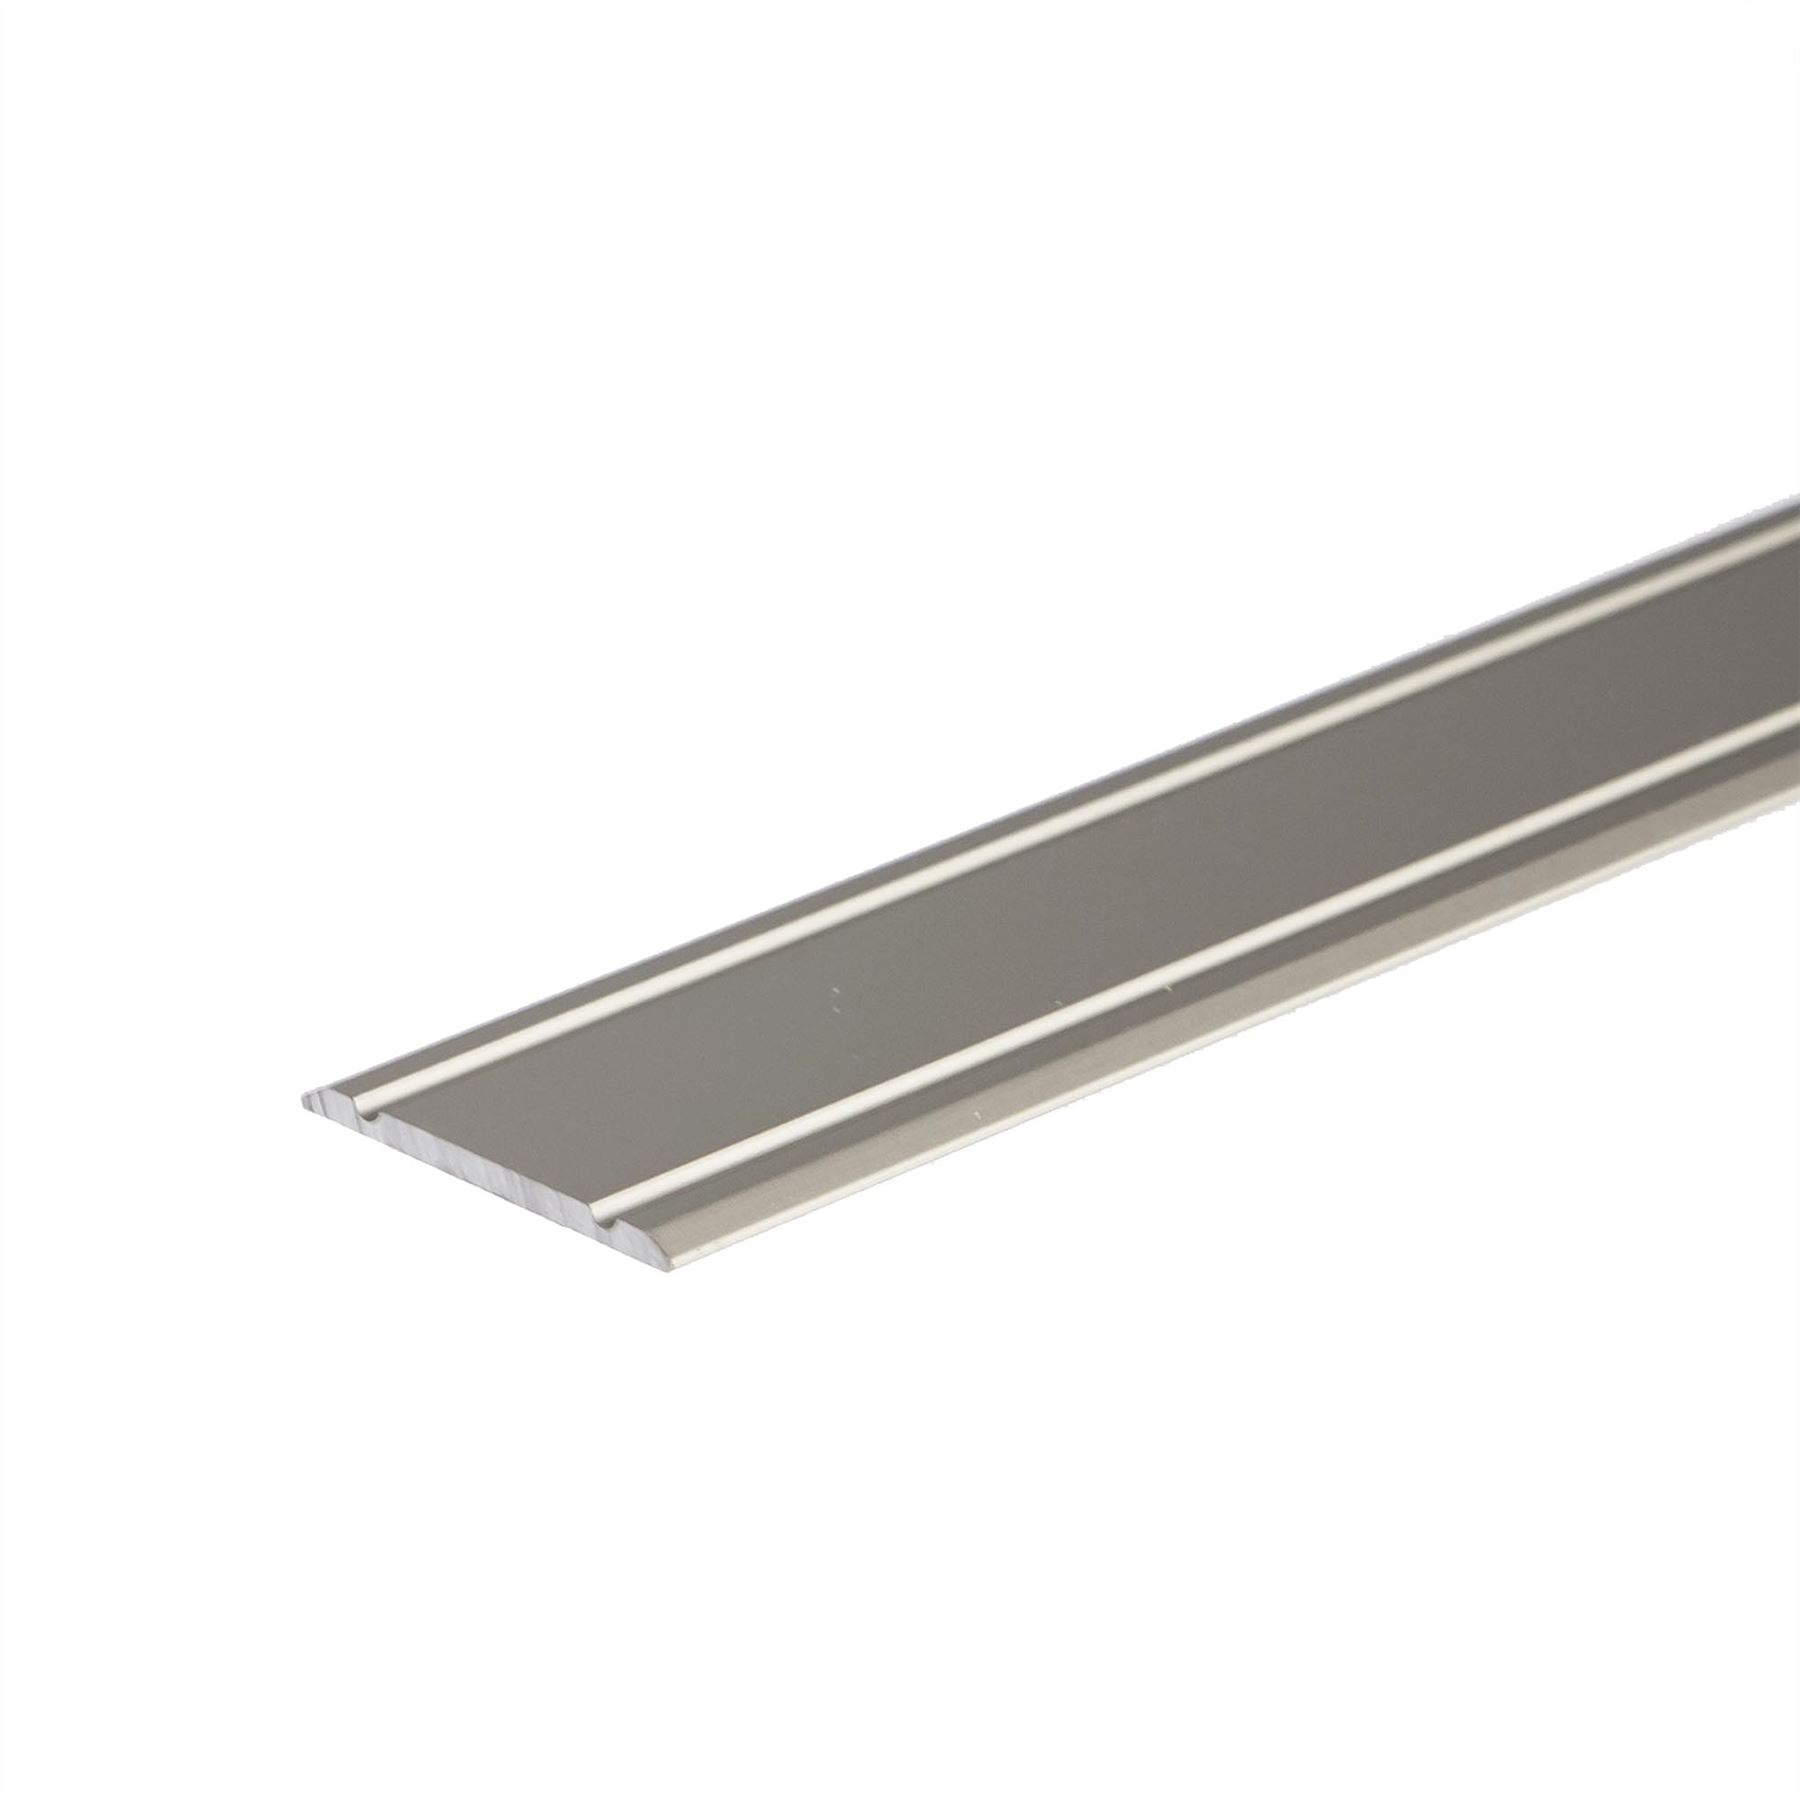 Flat anodised aluminium door floor edging bar strip trim for Door edge trim